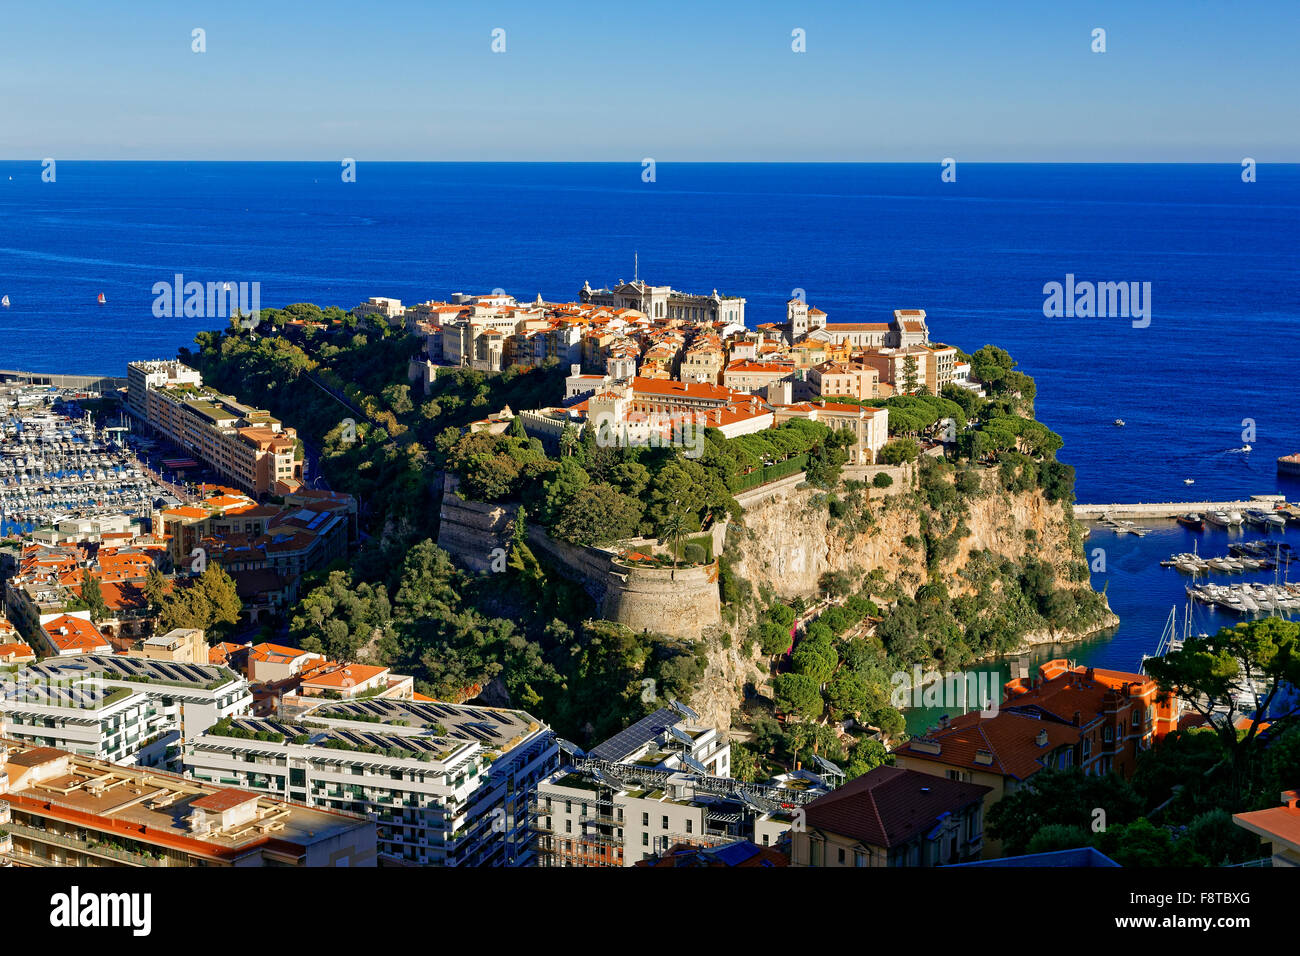 Monaco, Old town skyline with Royal Palace - Stock Image